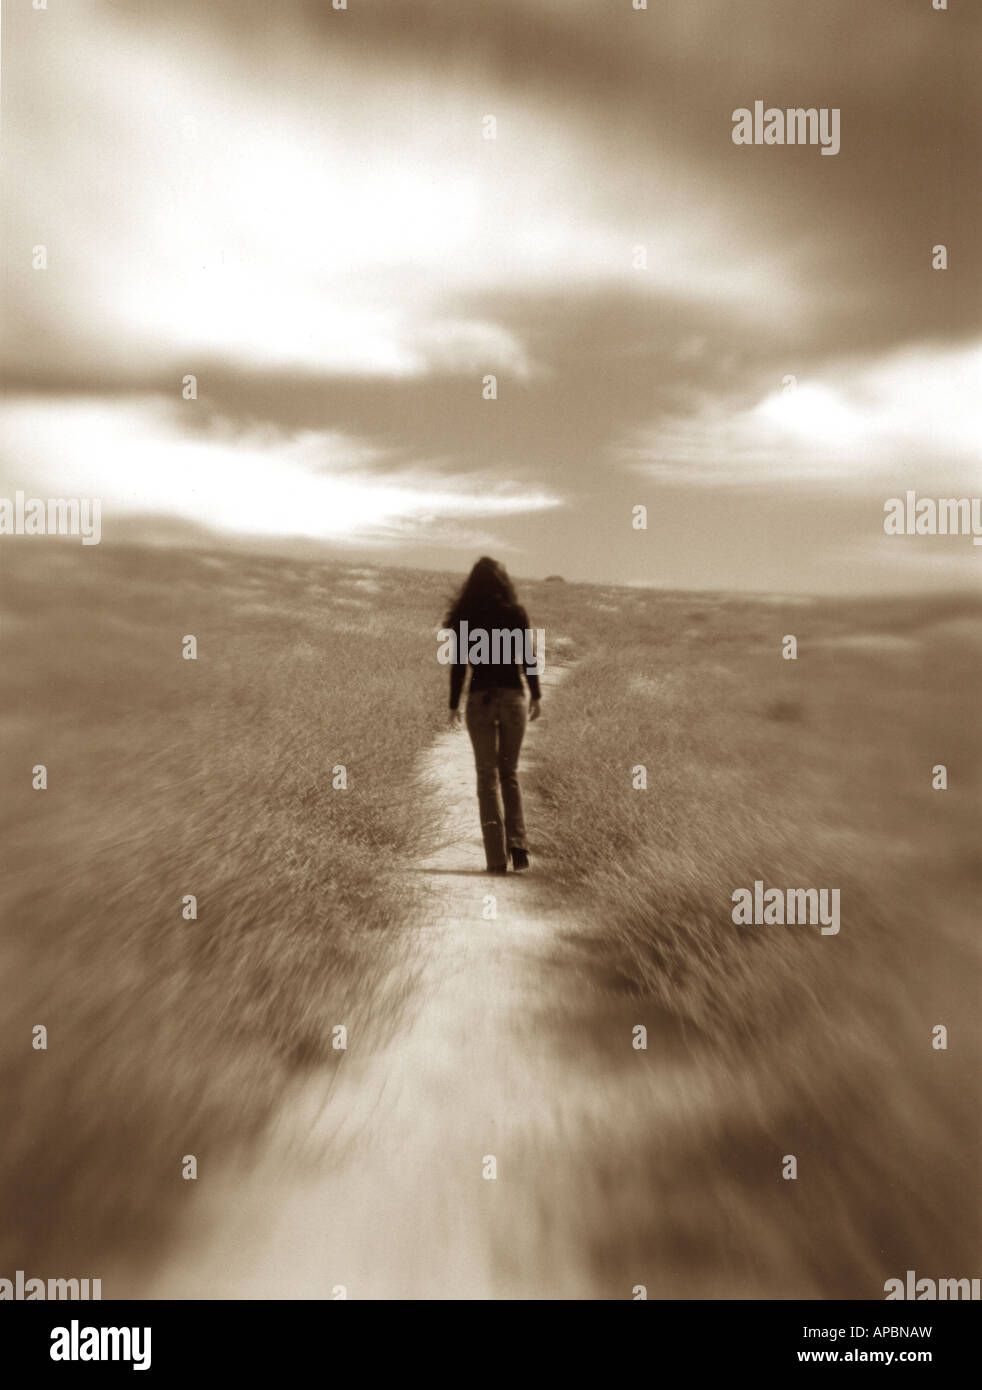 lone woman walks away on dirt path black and white wander lost walk explore hike trail - Stock Image